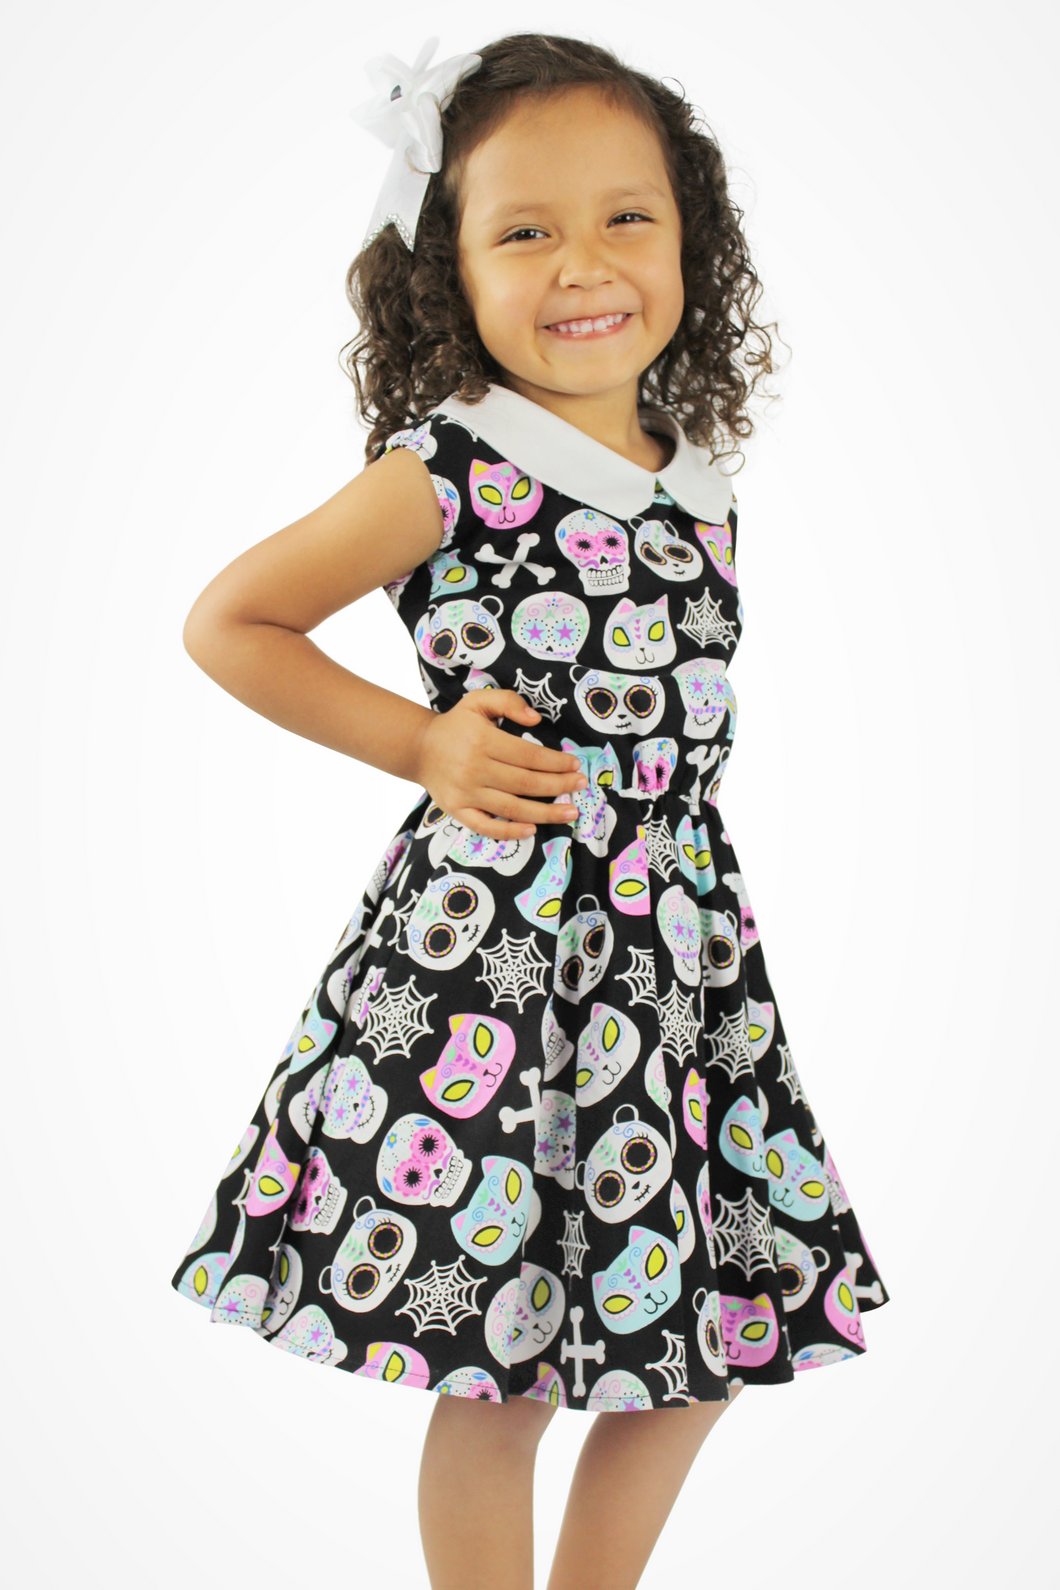 Cute Critters Skulls Dress - Trick or Treat/Day of the Dead Dress